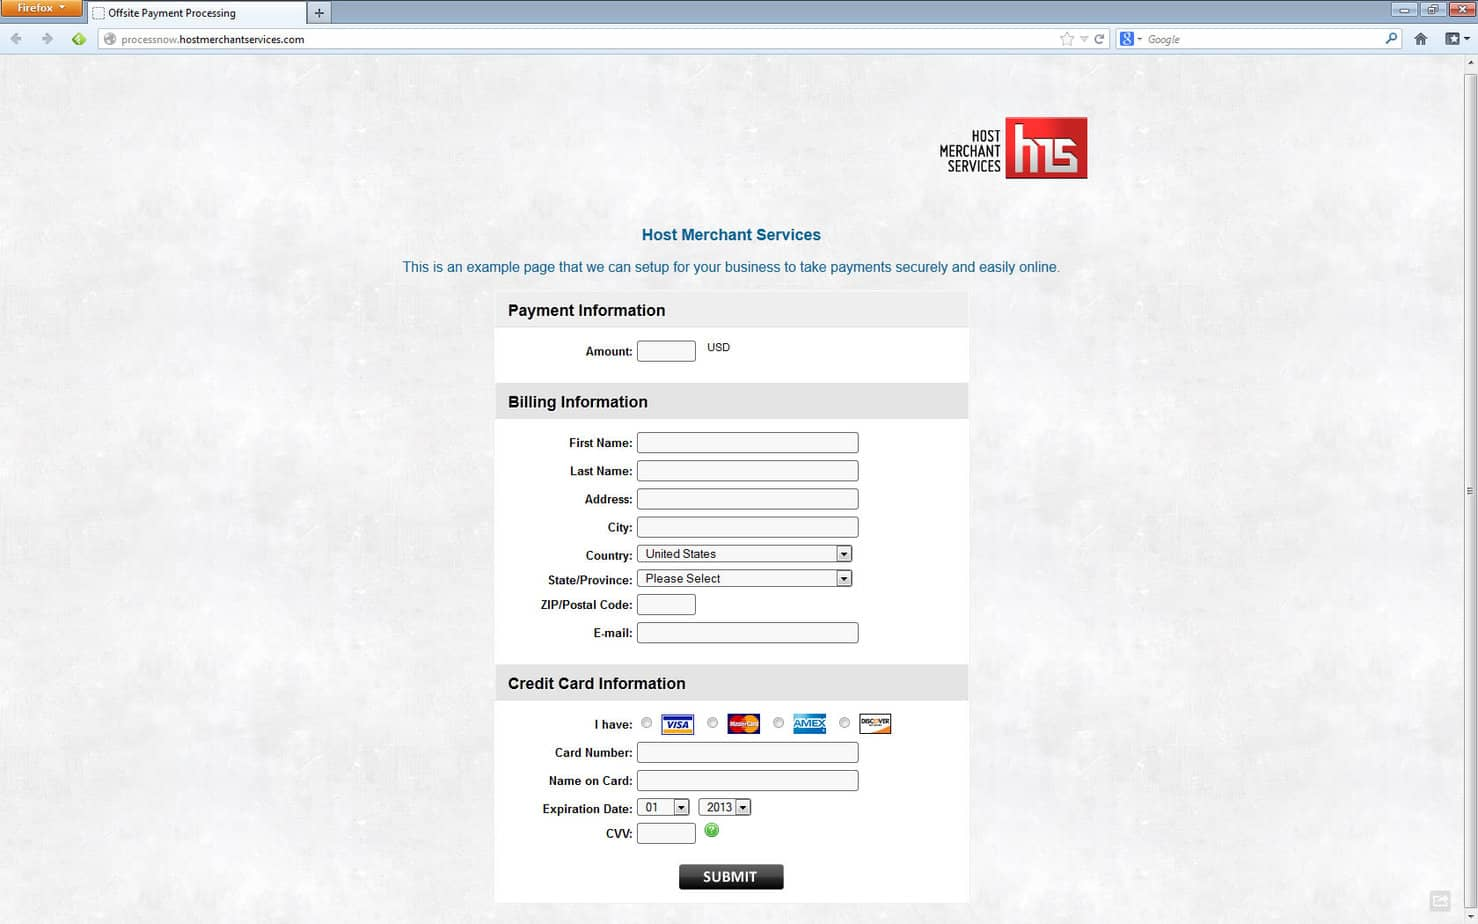 Offsite Payment Processing - Host Merchant Services